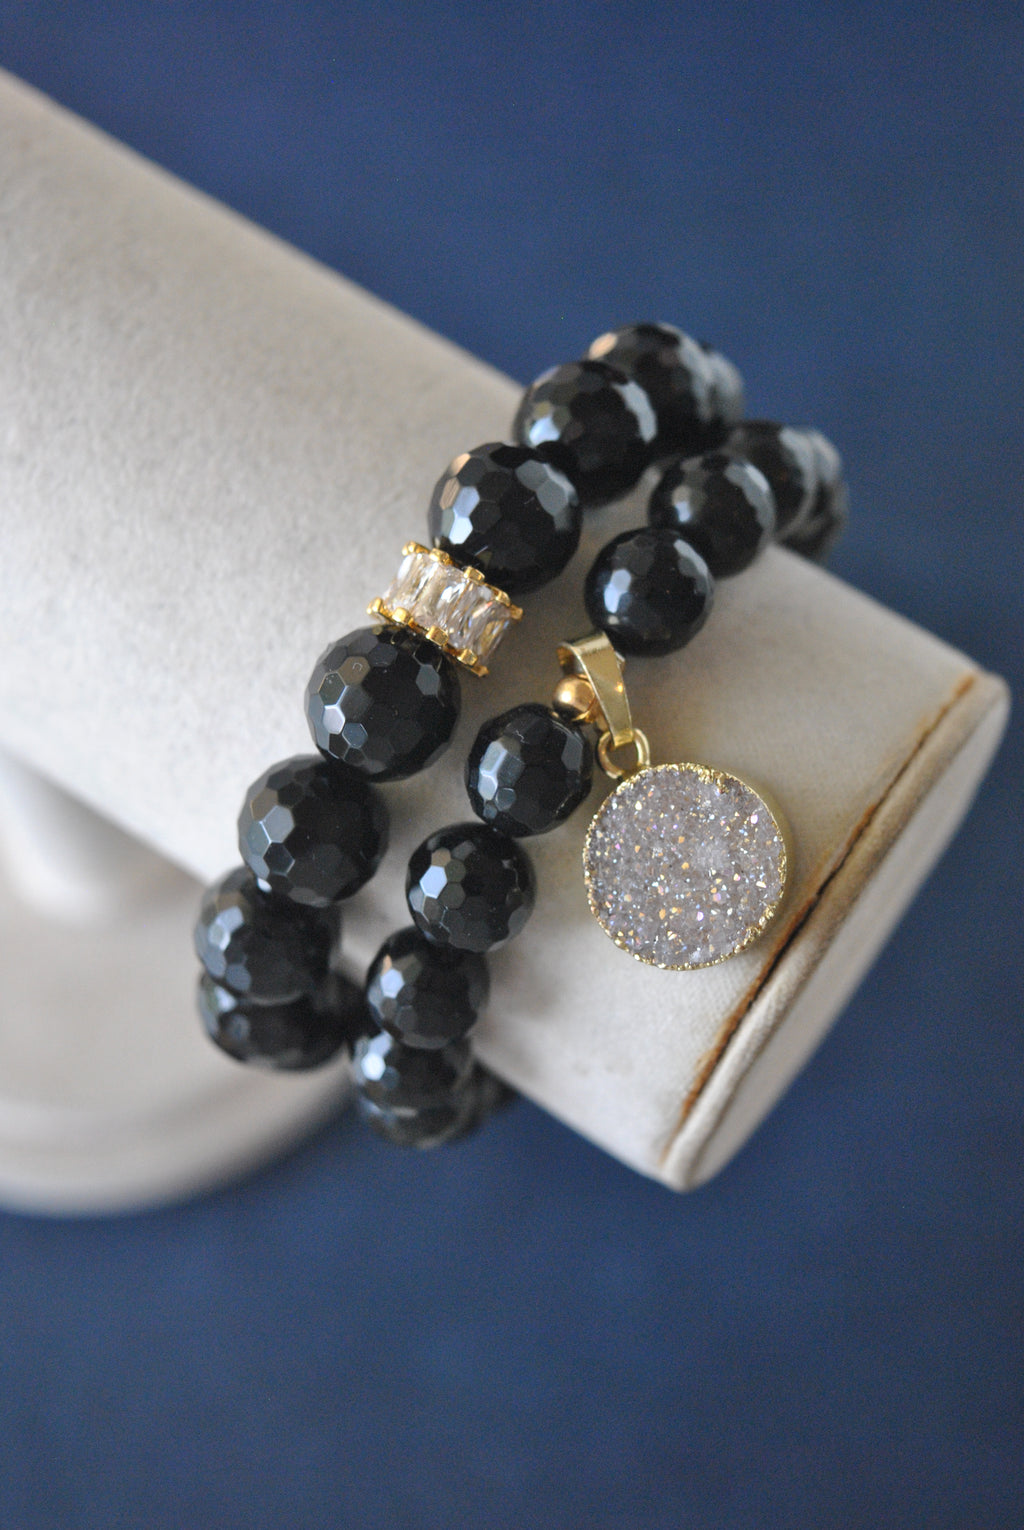 BLACK ONYX AND DRUZY CHARM ON GOLD STRETCHY BRACELET SET